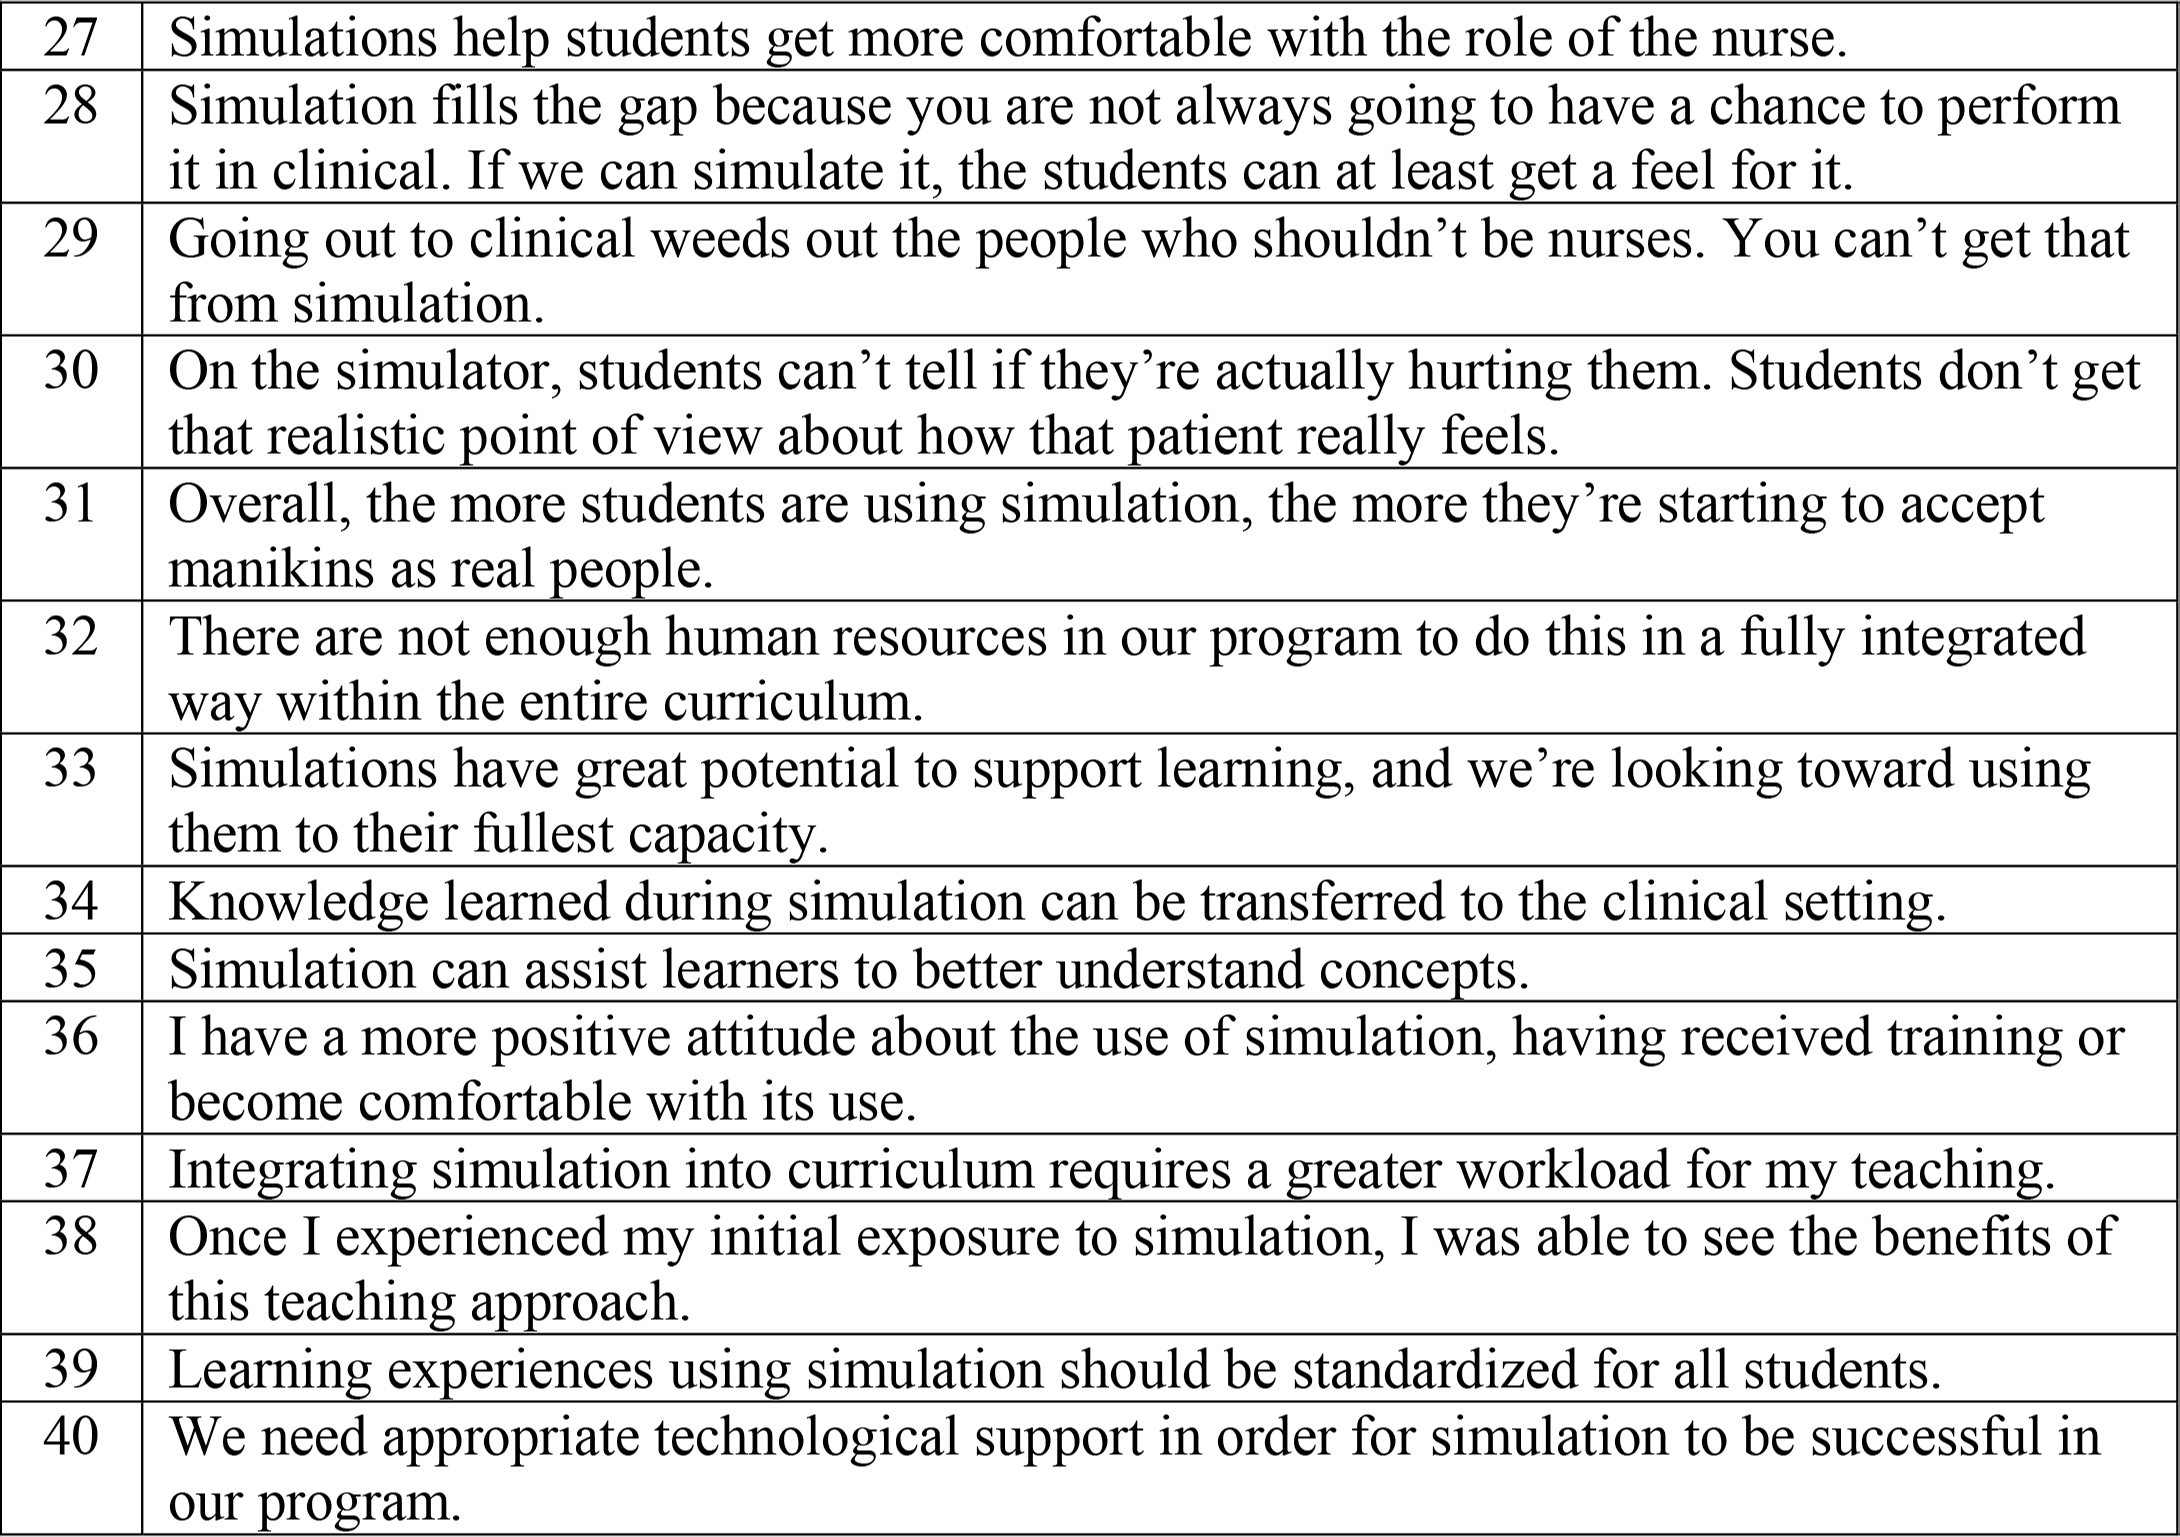 Q-Sample of Faculty Statements